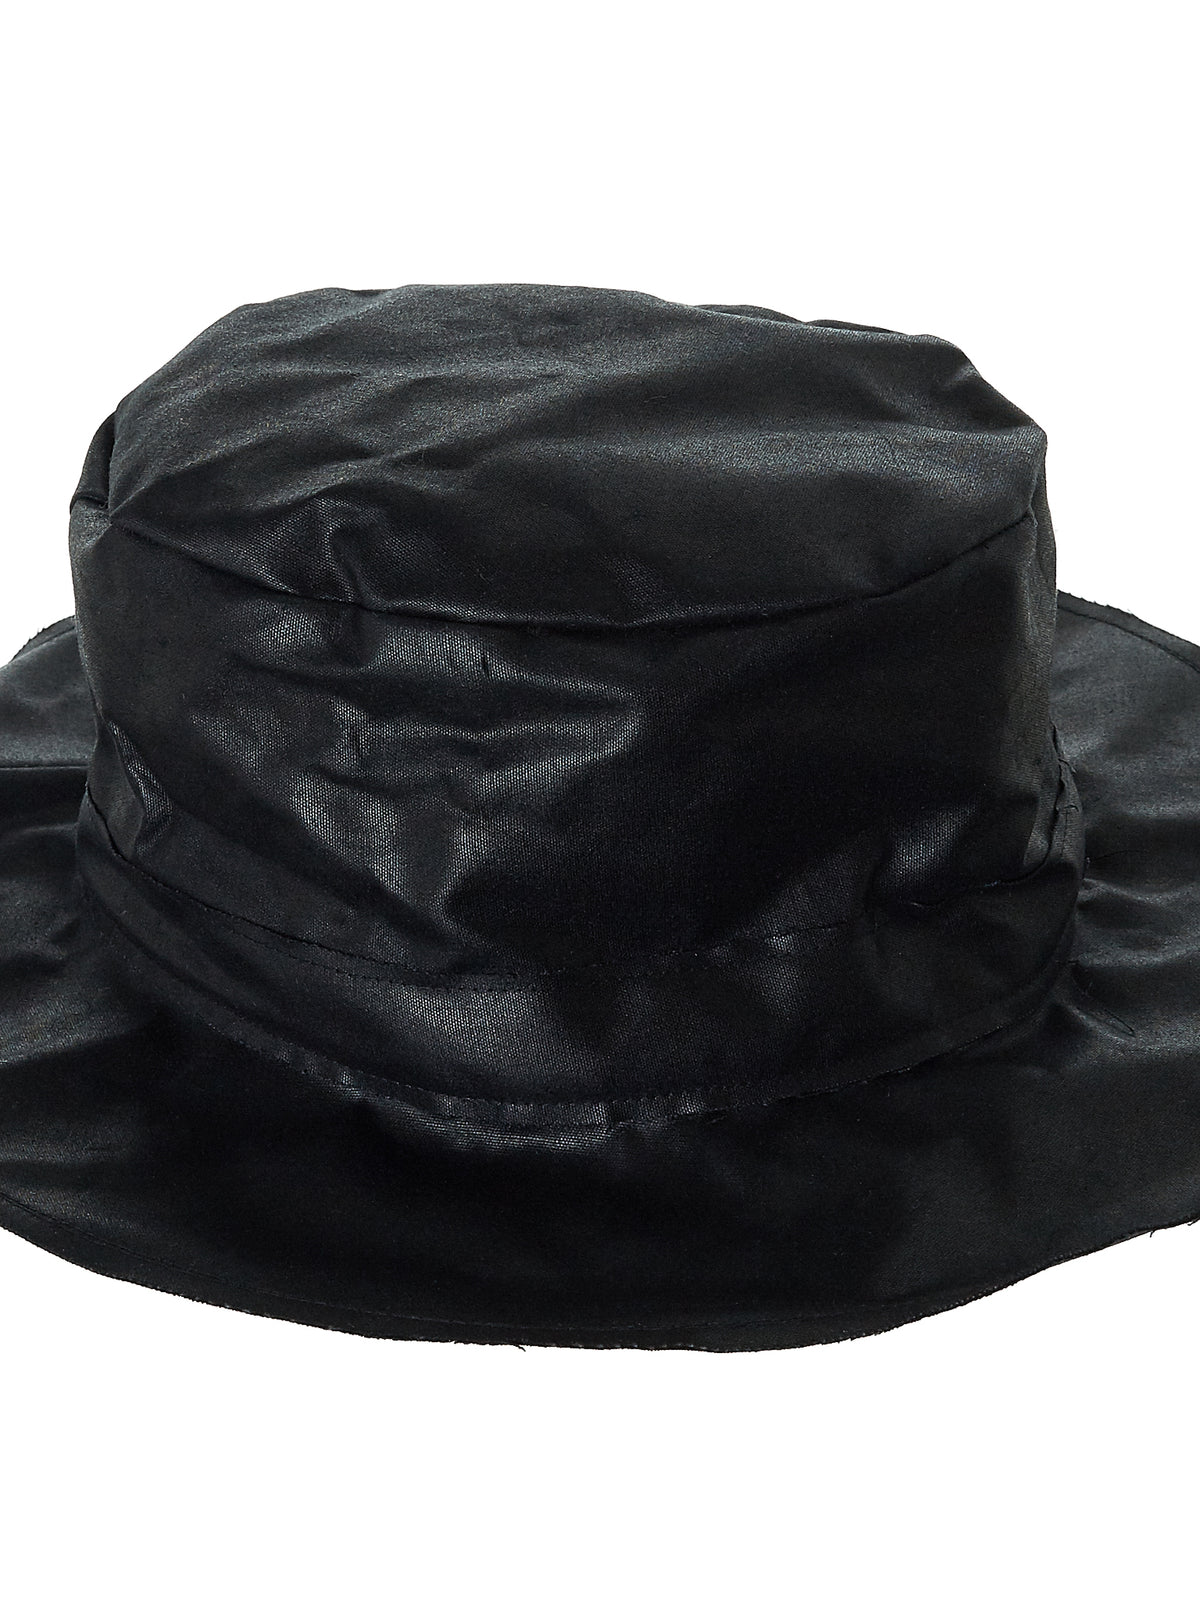 'Walk Time Big' Crushed Hat (WALK-TIME-WXC-MB-BLACK)